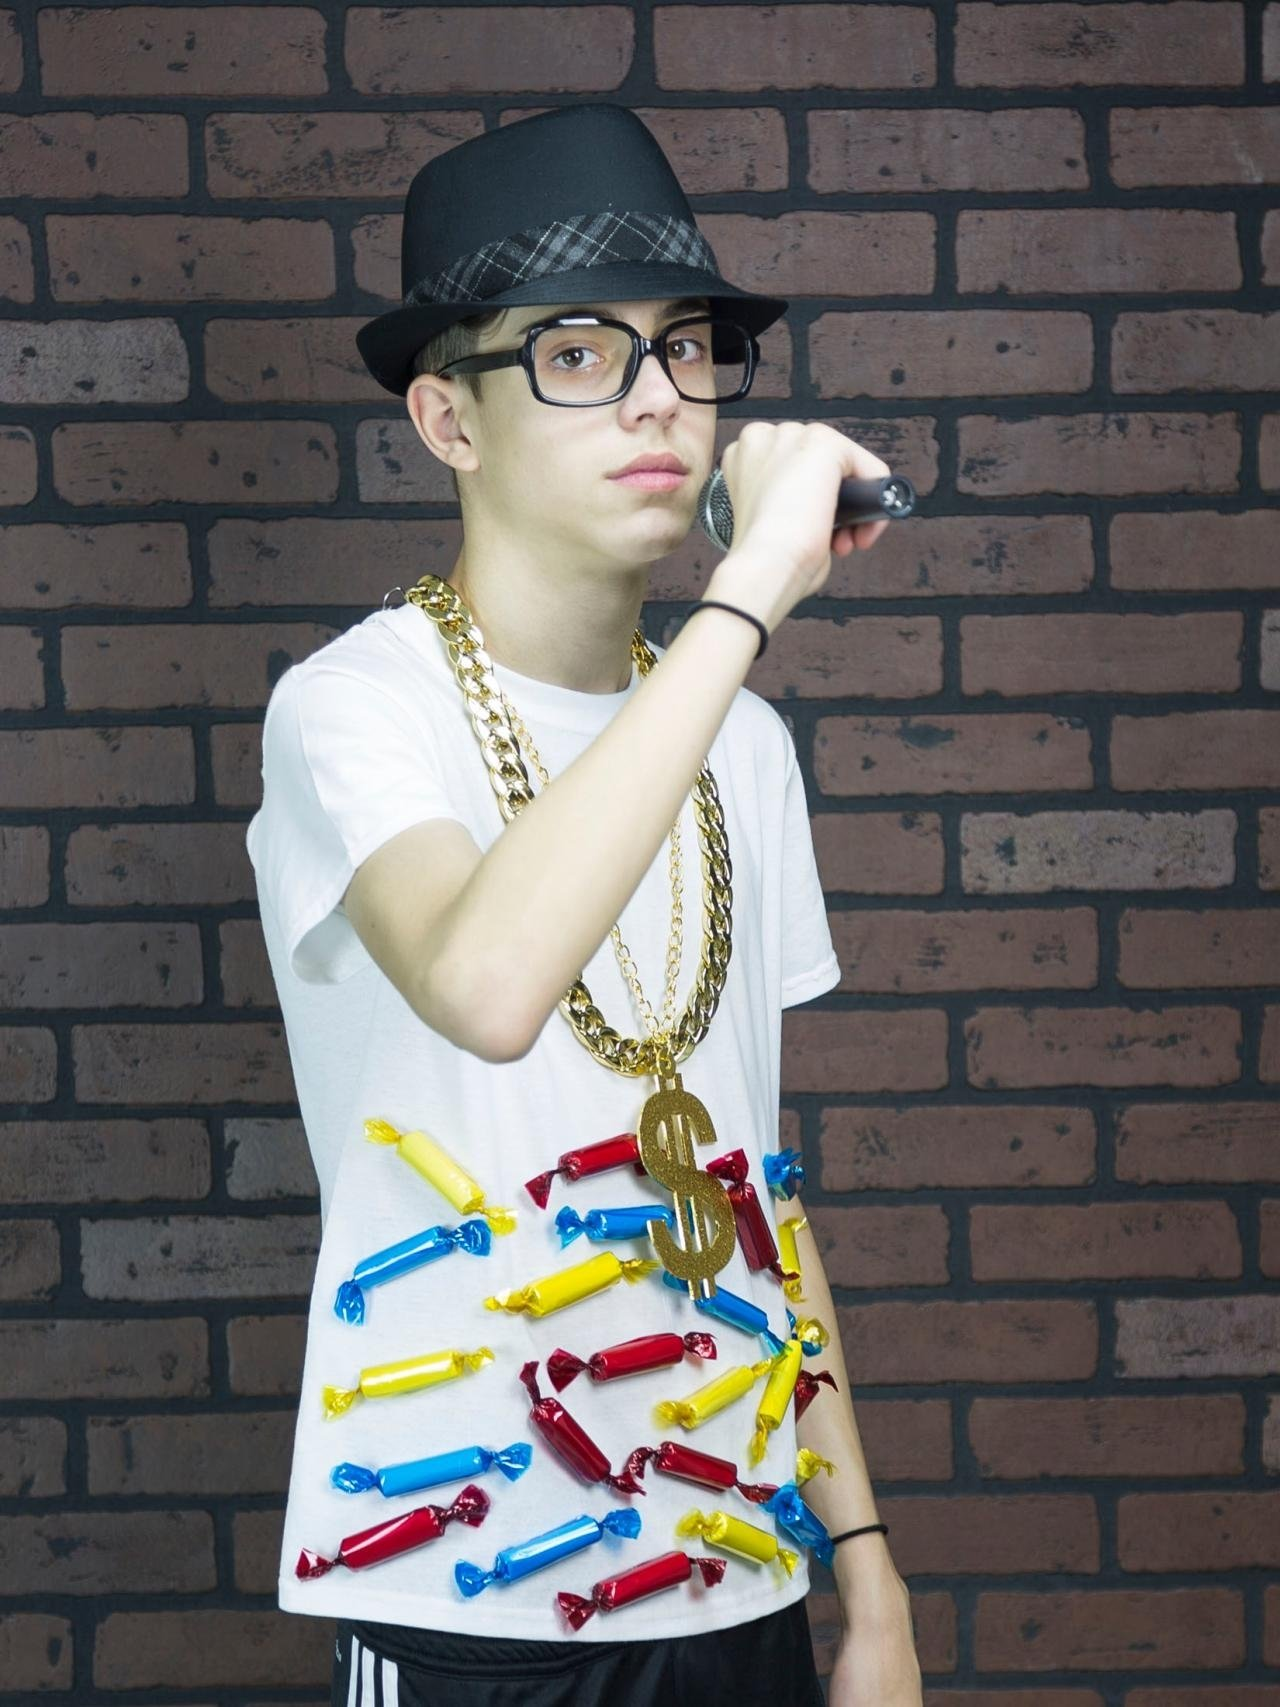 10 Amazing Easy Homemade Halloween Costume Ideas easy budget halloween costume hip hop candy rapper easy budget